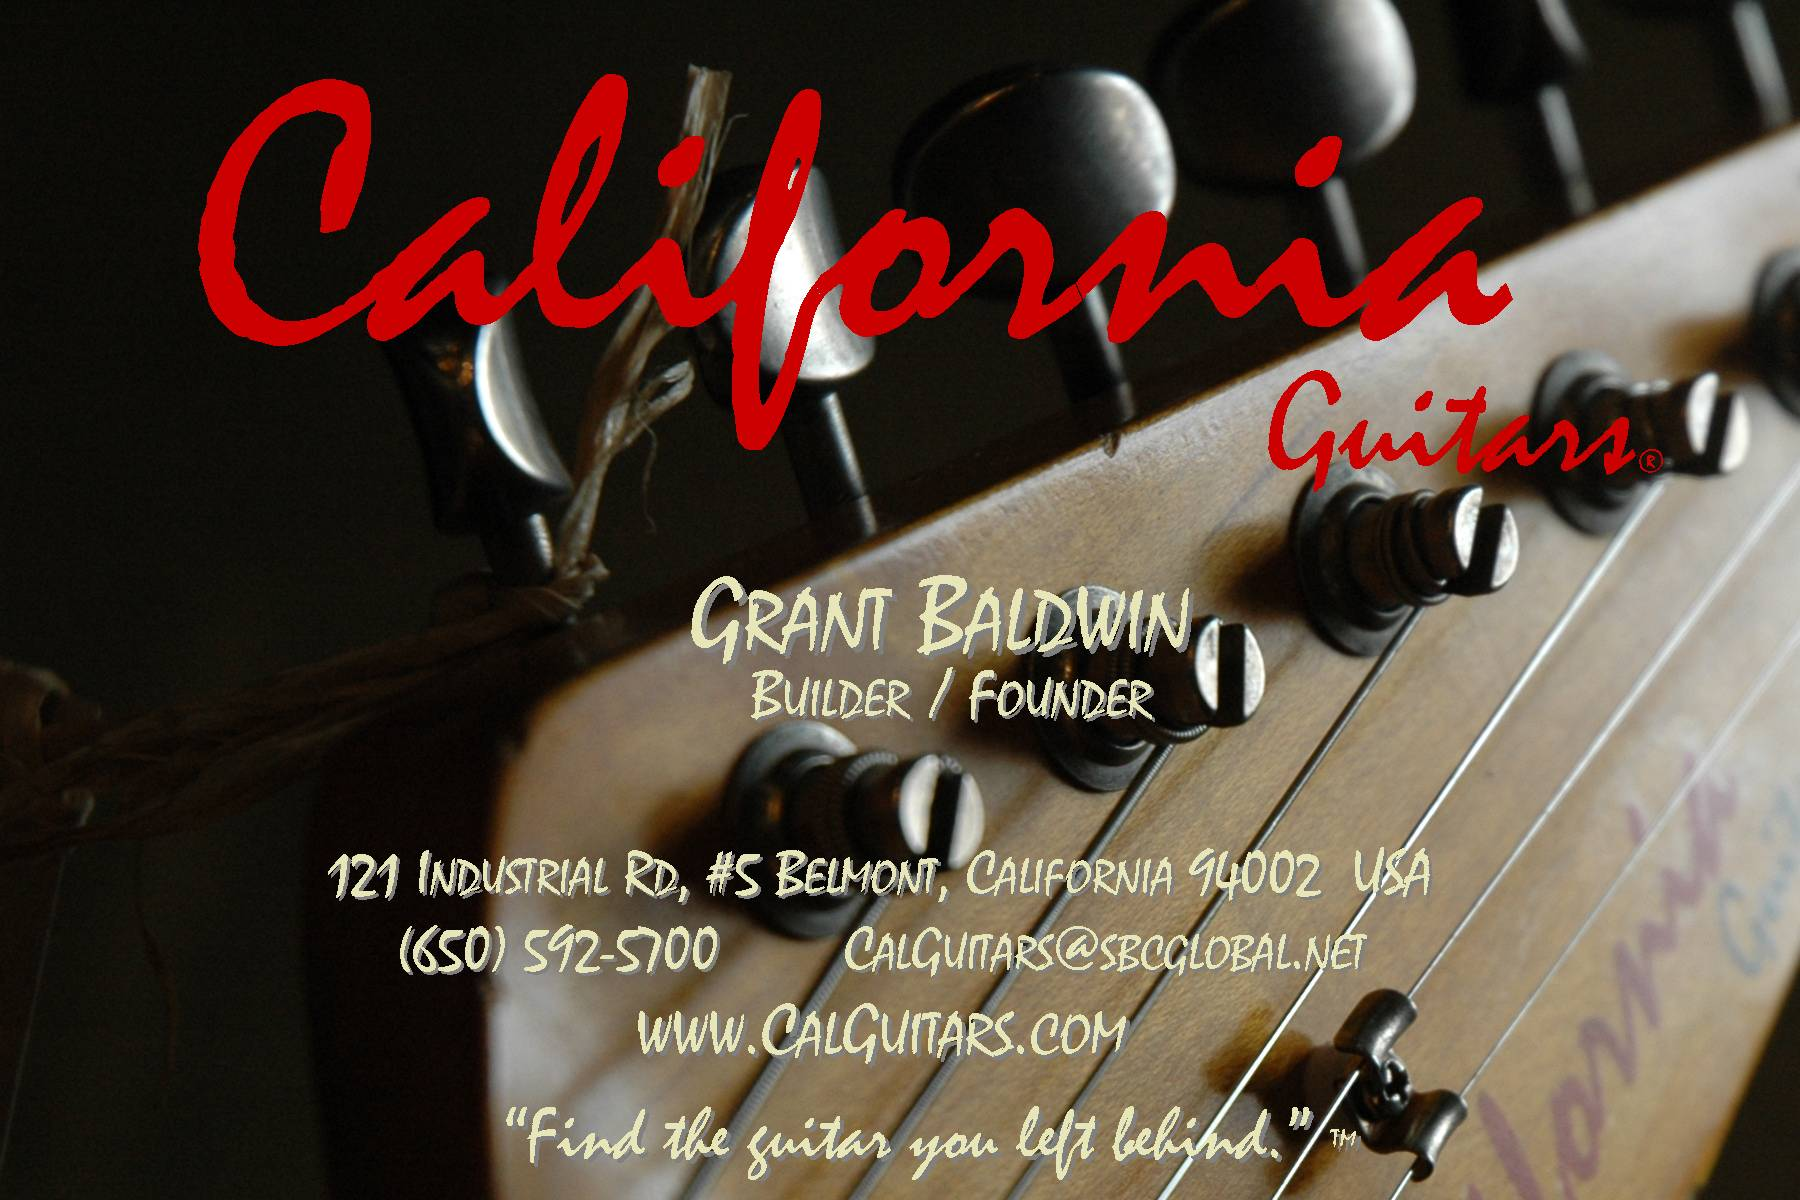 California Guitars